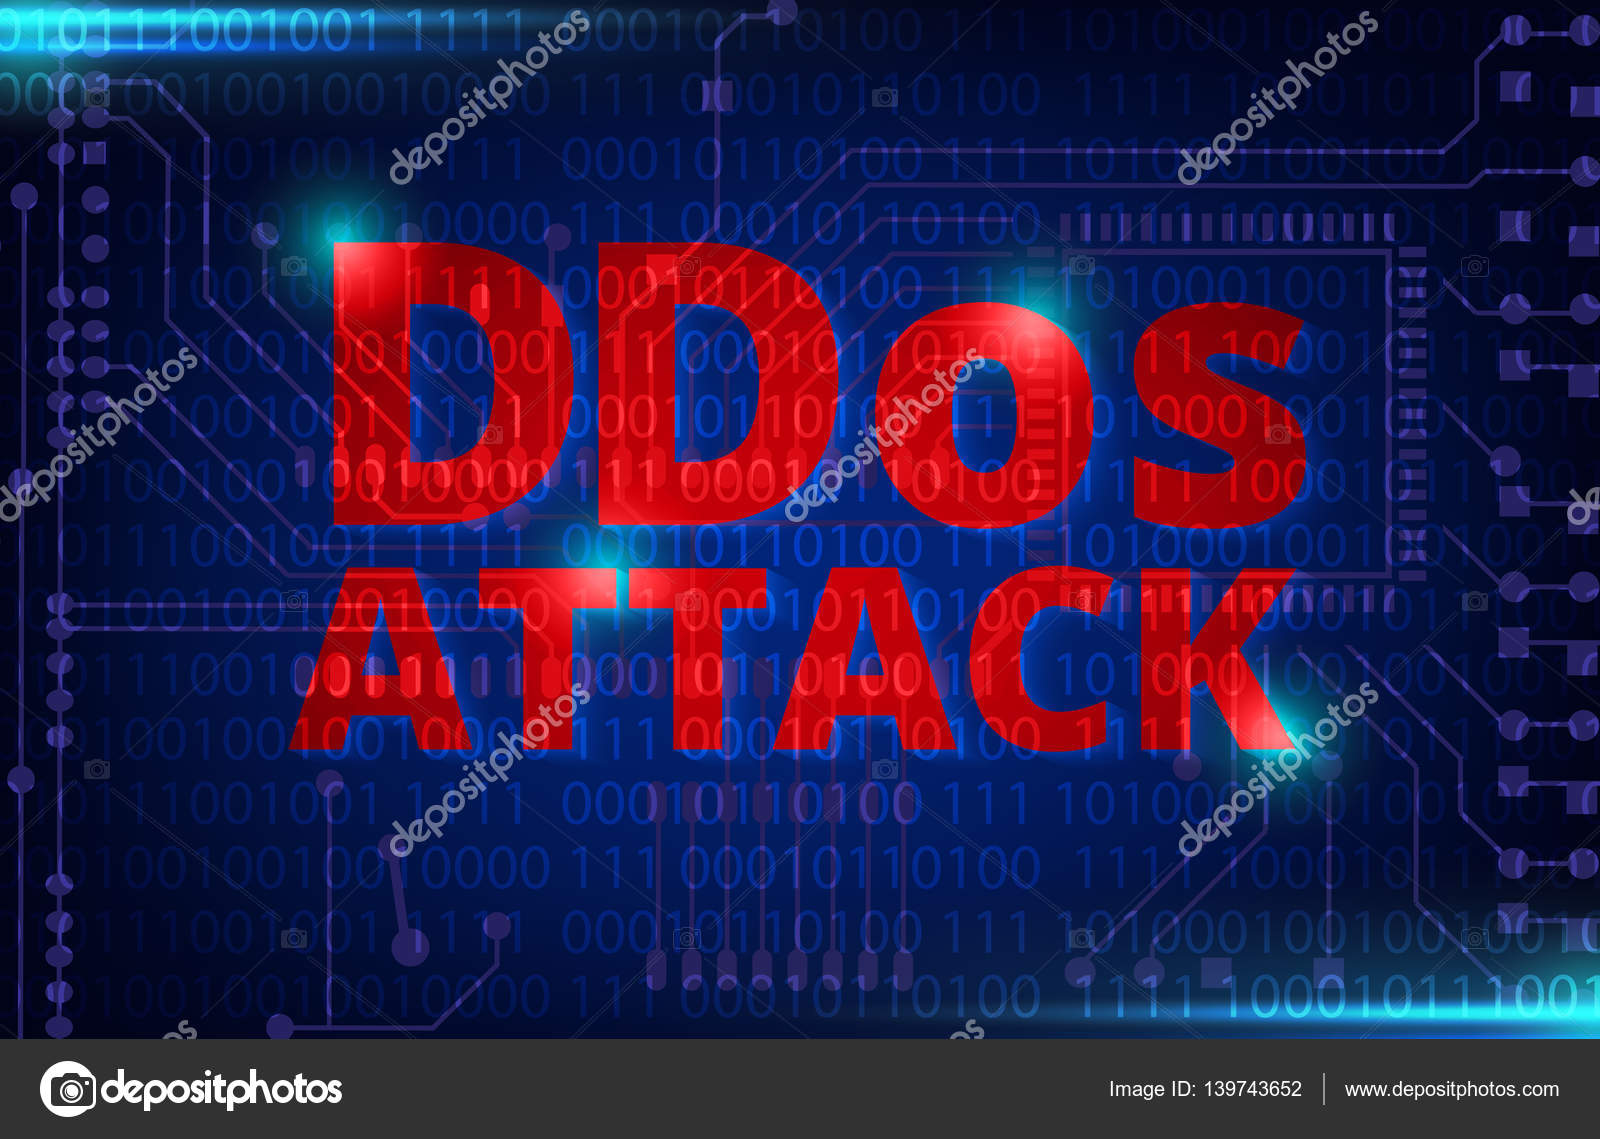 Ddos On A Digital Binary Warning Above Electronic Circuit Board Royaltyfree Images Code With Processor Background Vector By Nu1983